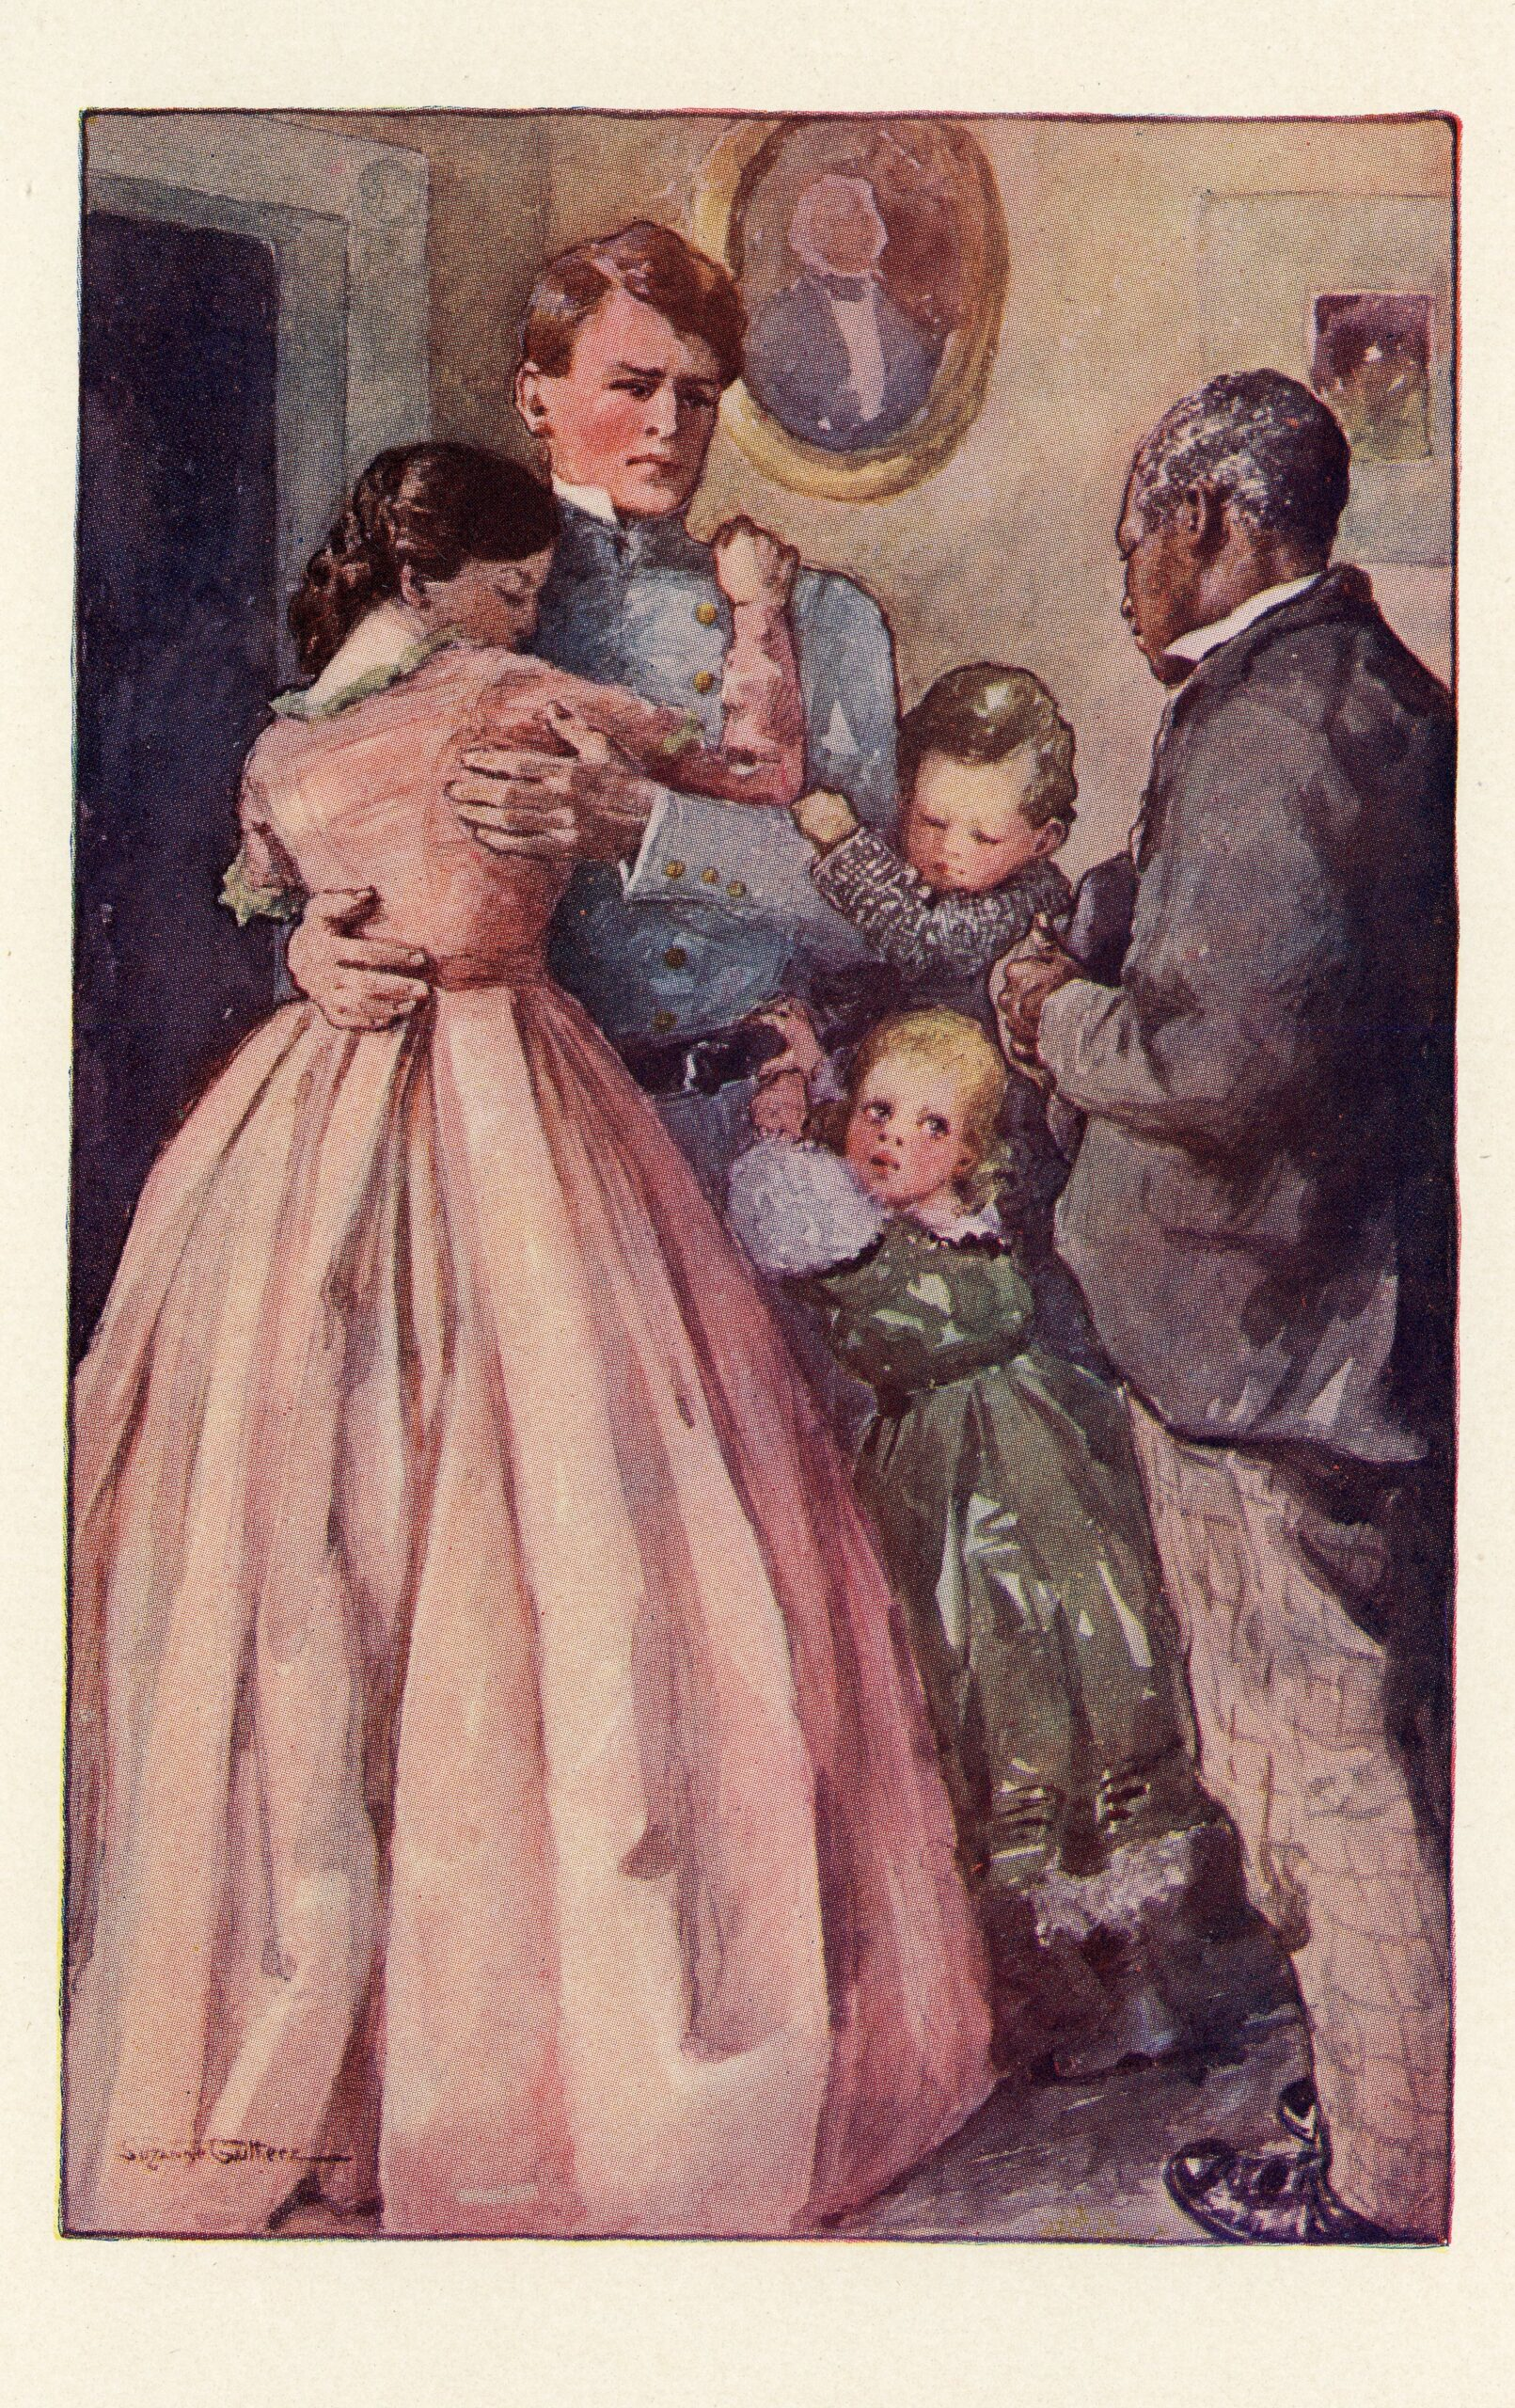 Illustration of a white family with an older African American man